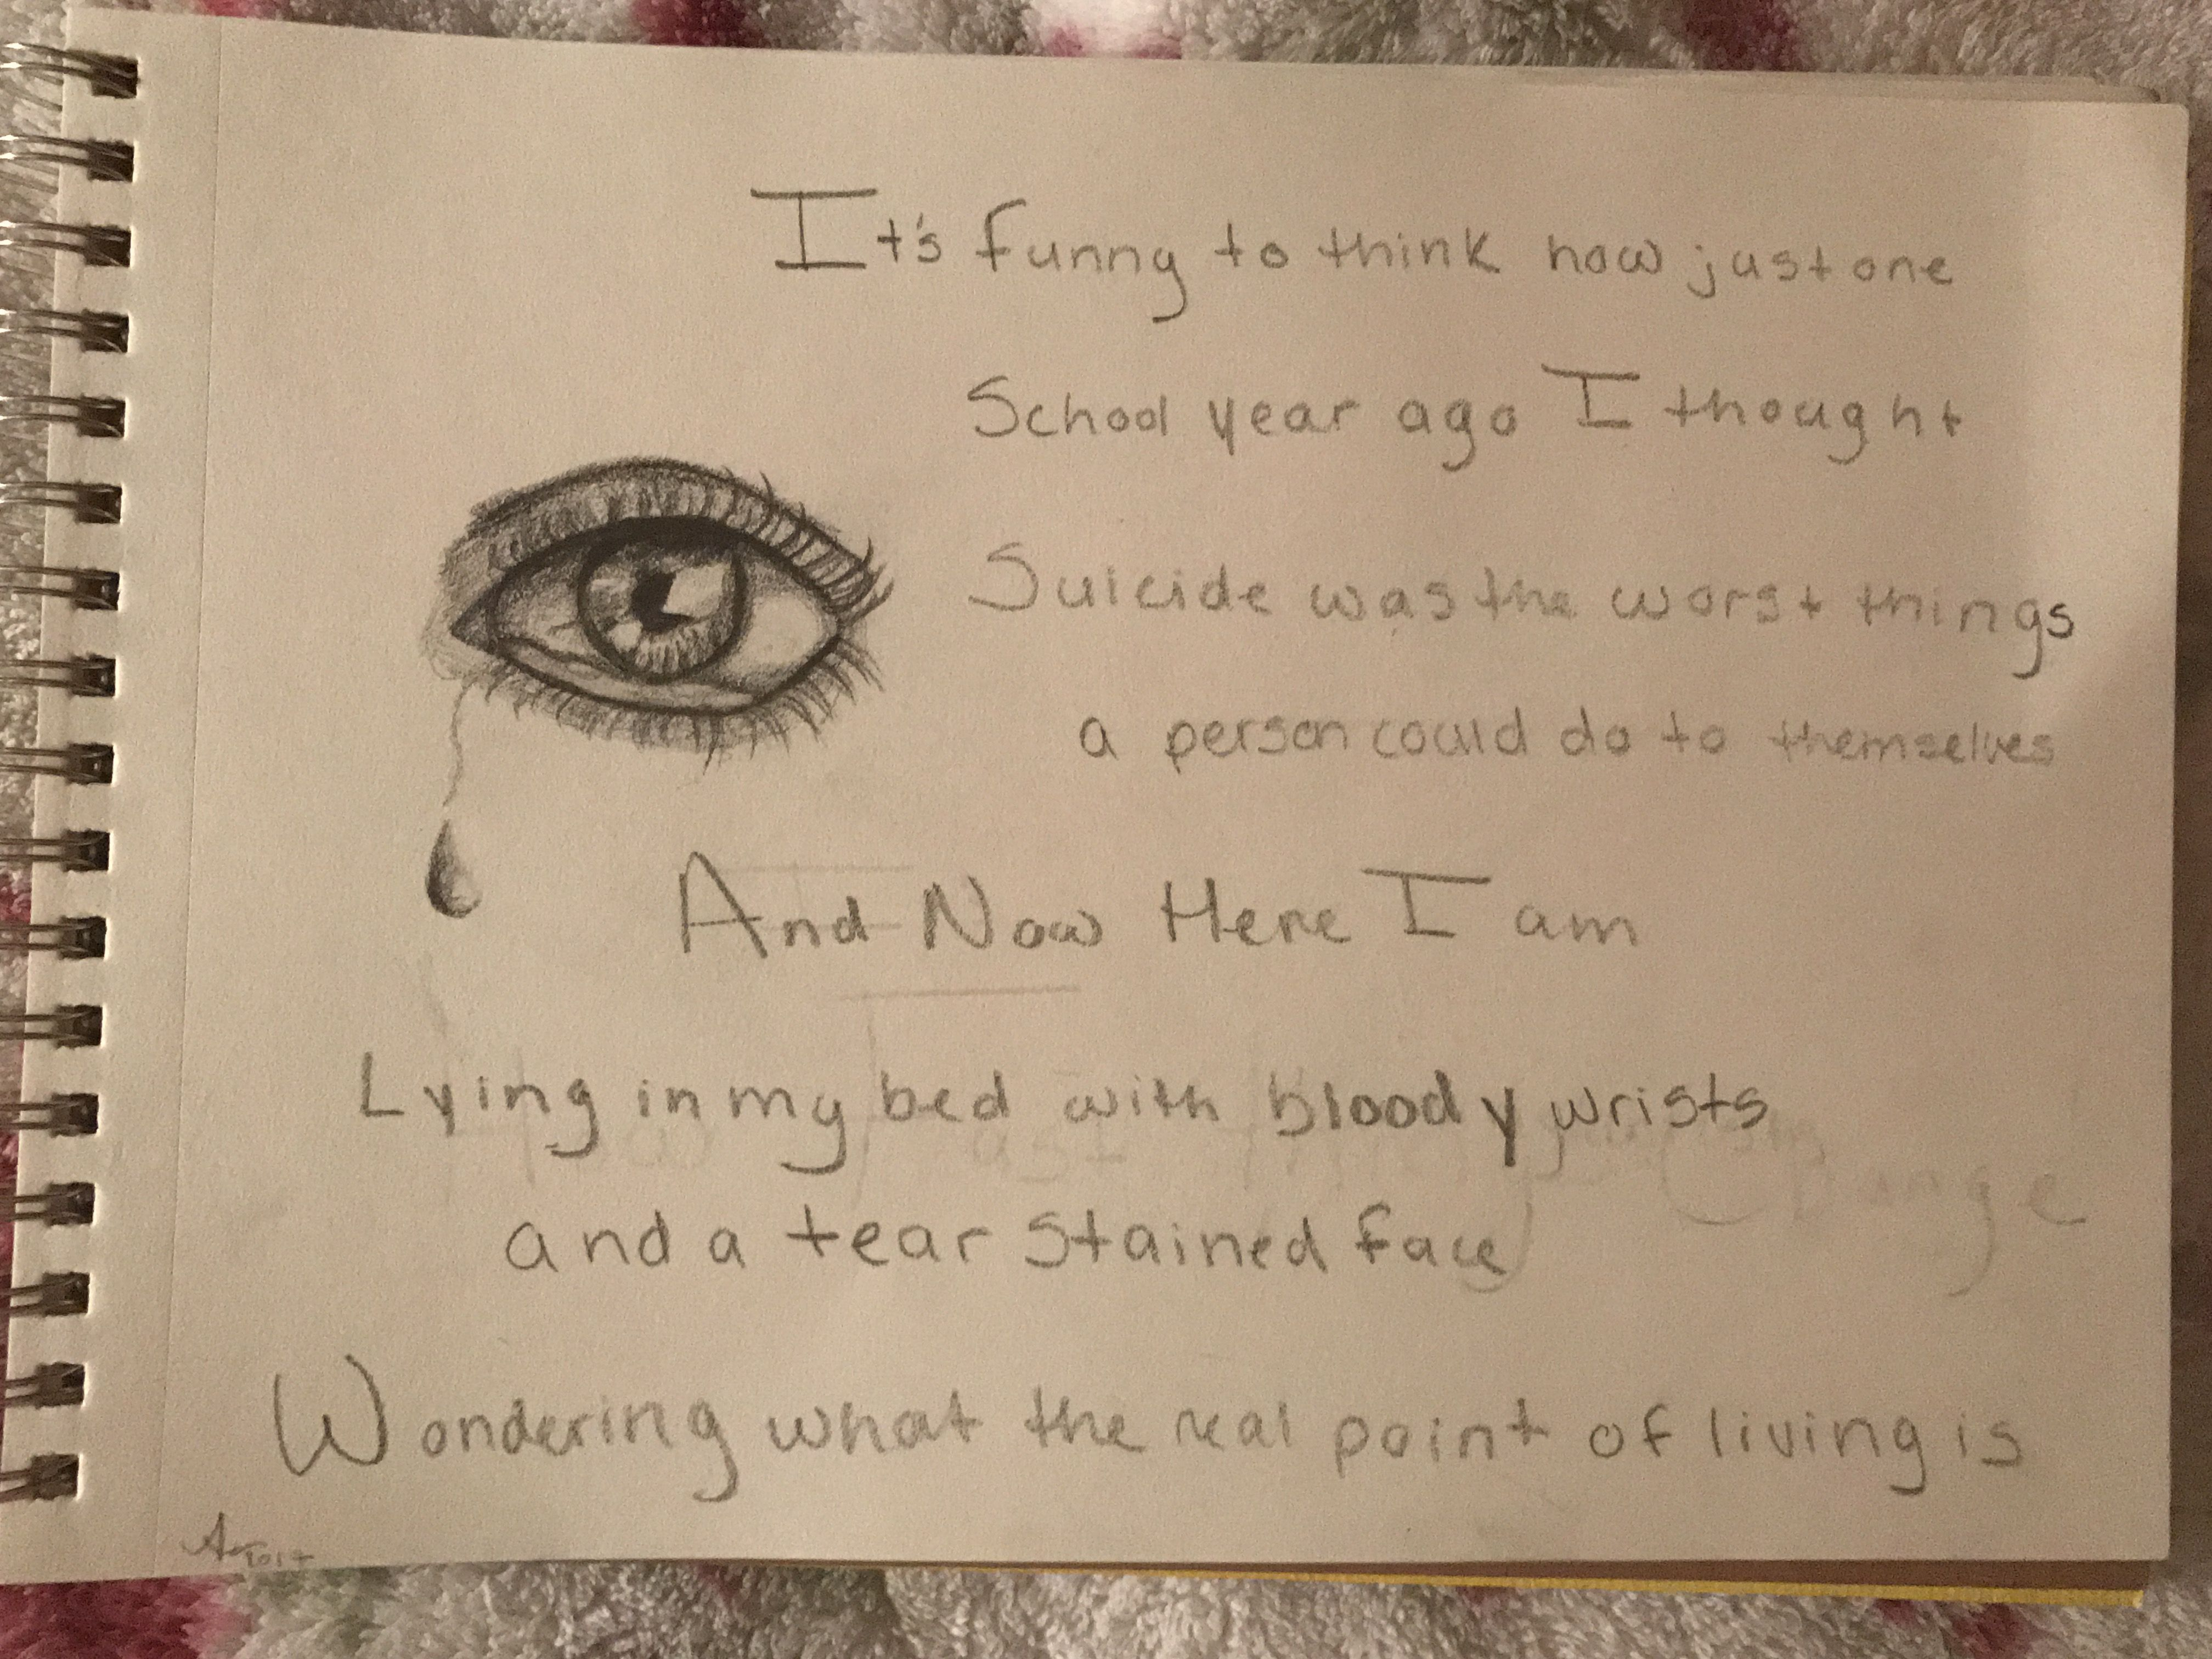 Depression self harm drawing quote  if only I knew    Sad     Depression self harm drawing quote  if only I knew